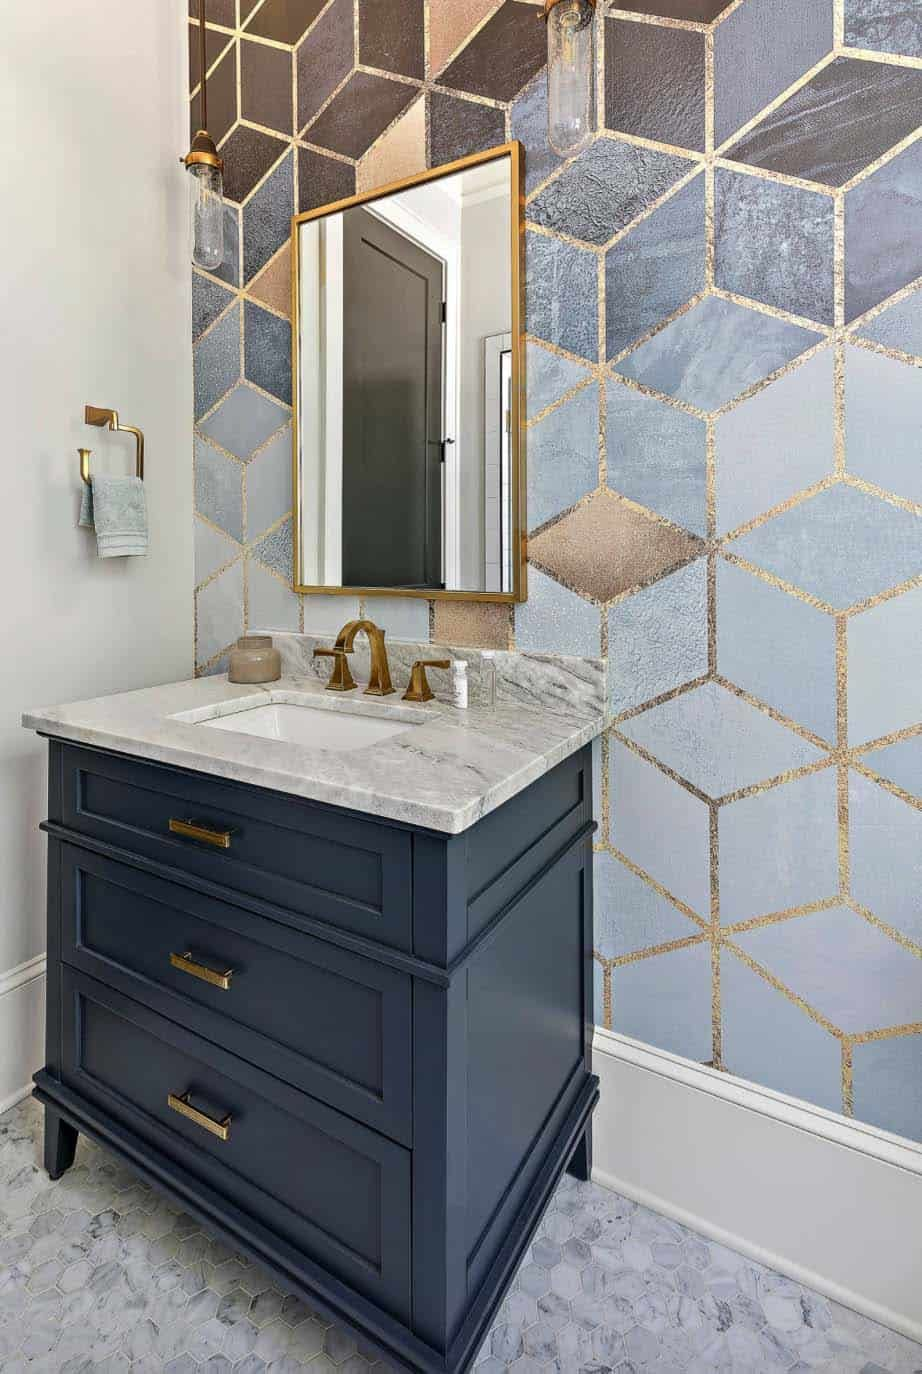 This bathroom has an eye-catching accent wall and a stylish antique brass mirror